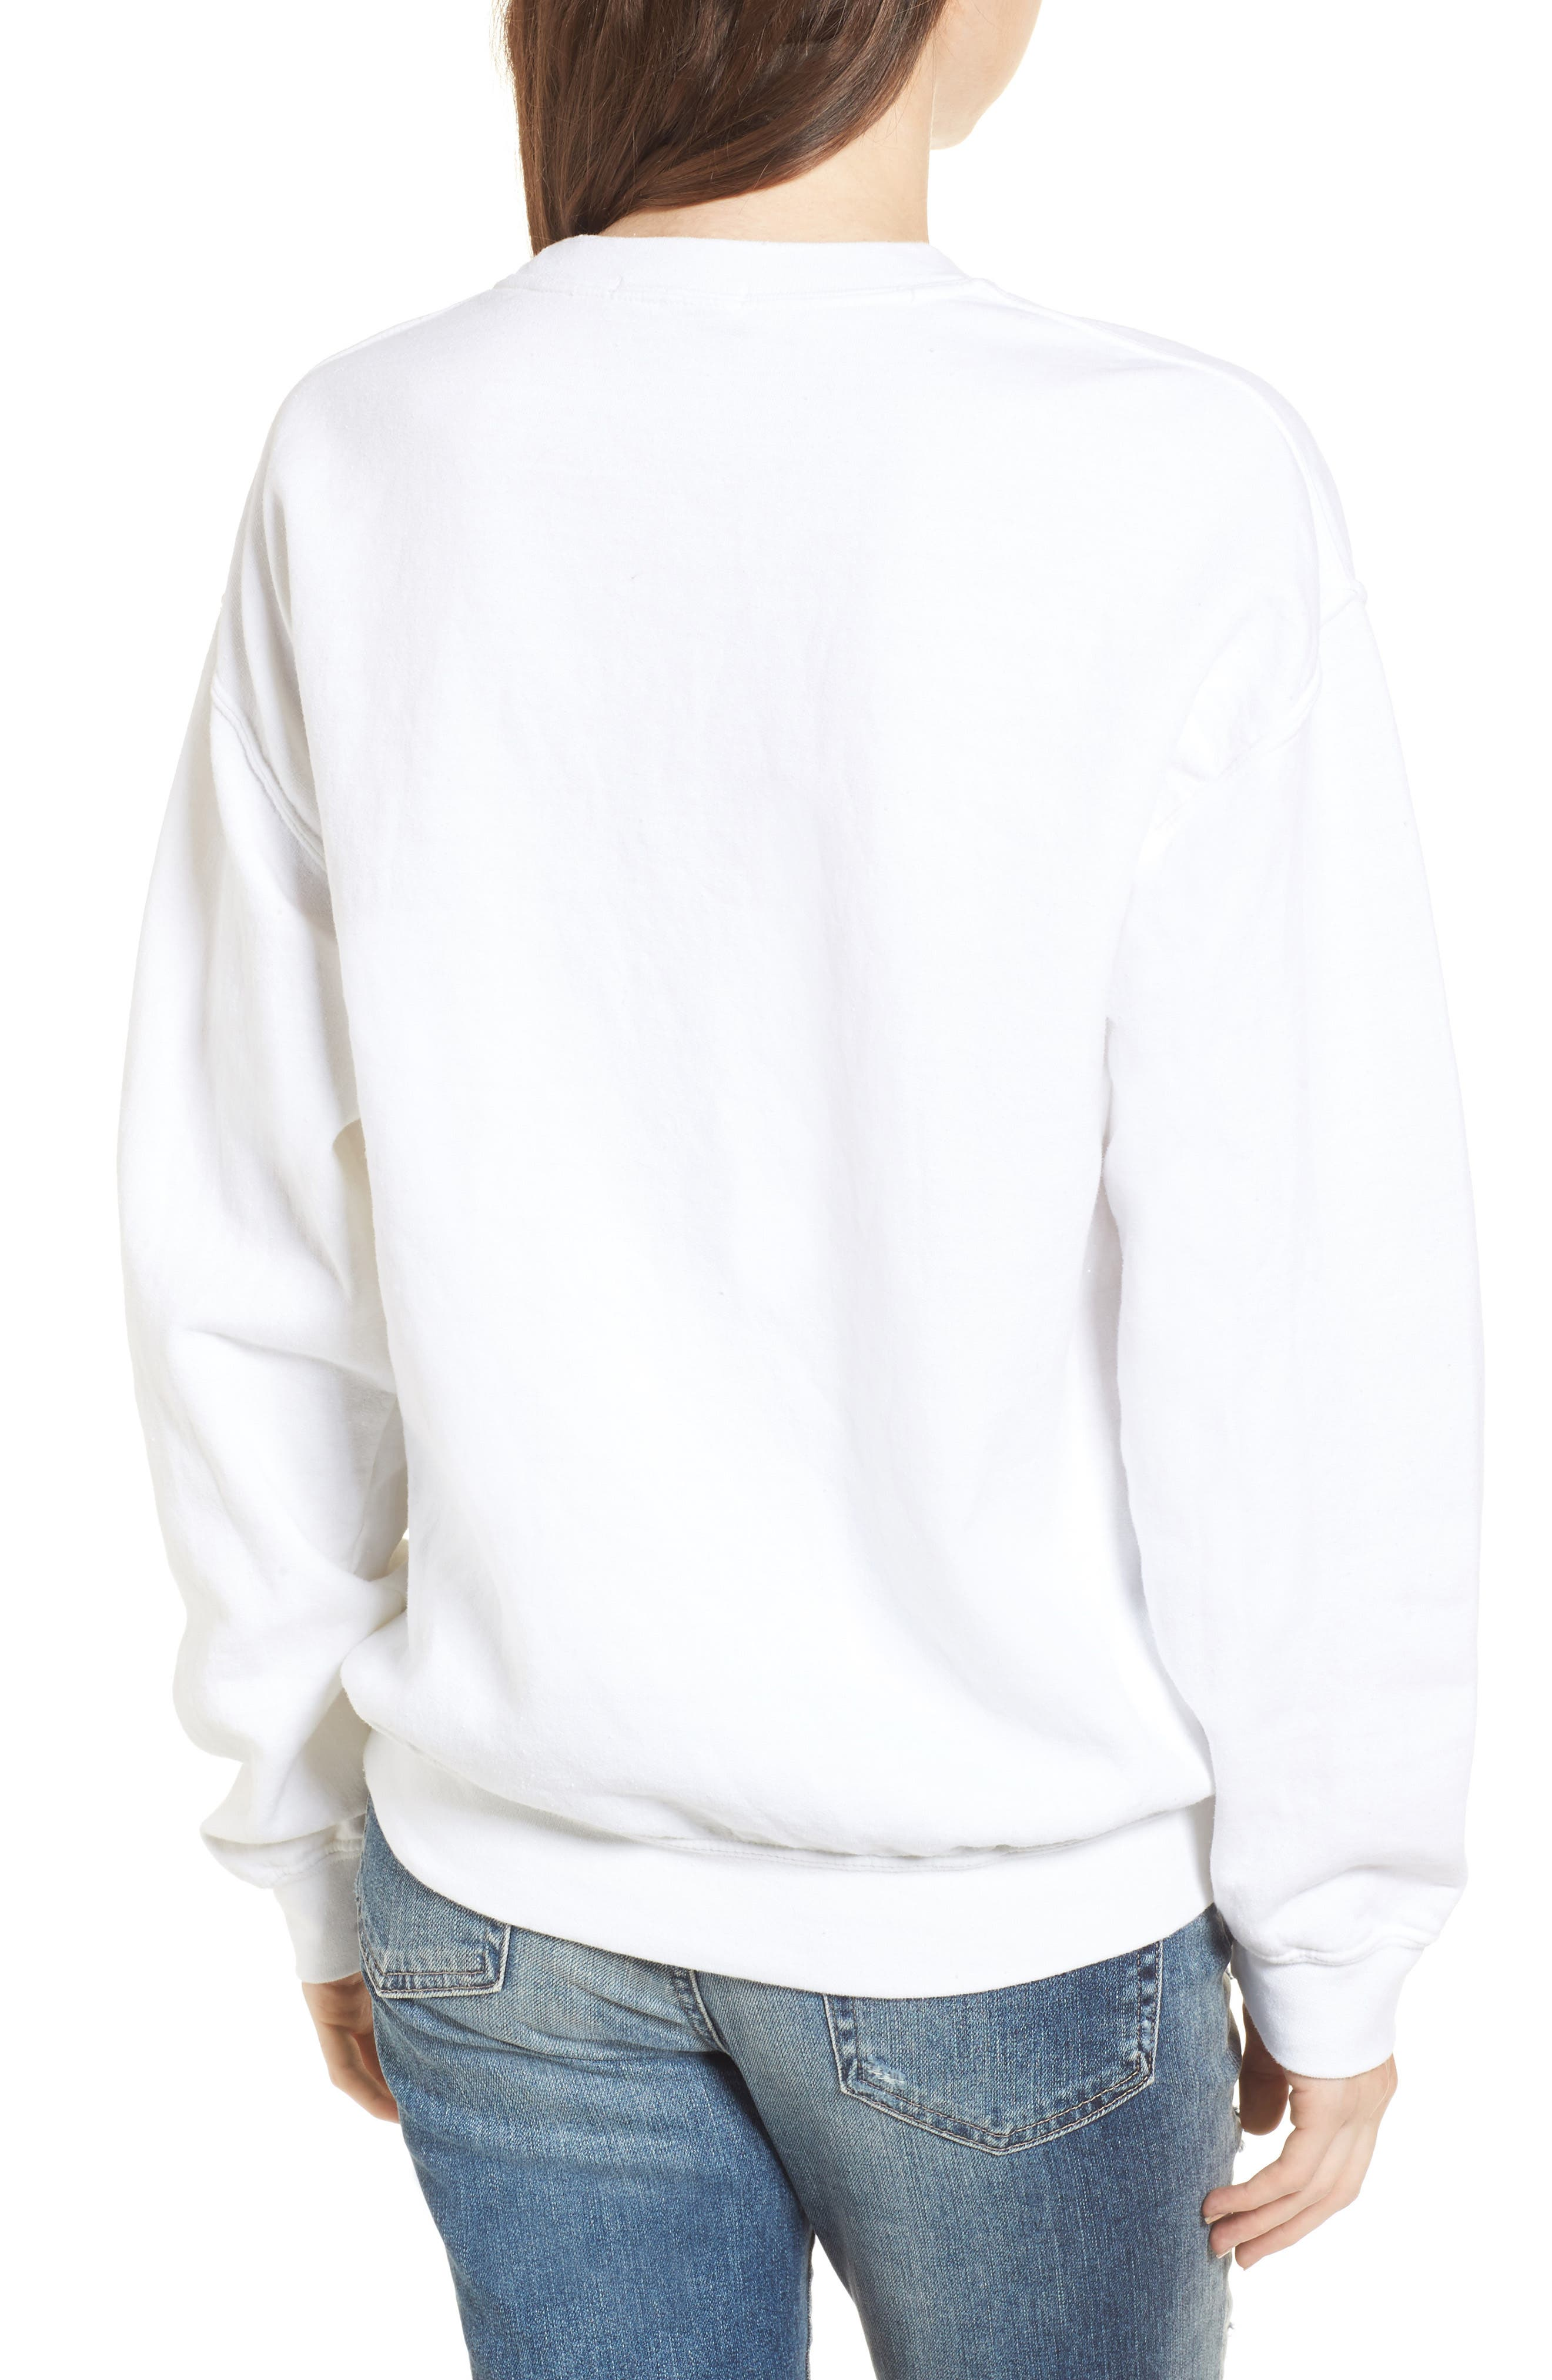 Let's Get Lit Sweatshirt,                             Alternate thumbnail 2, color,                             White